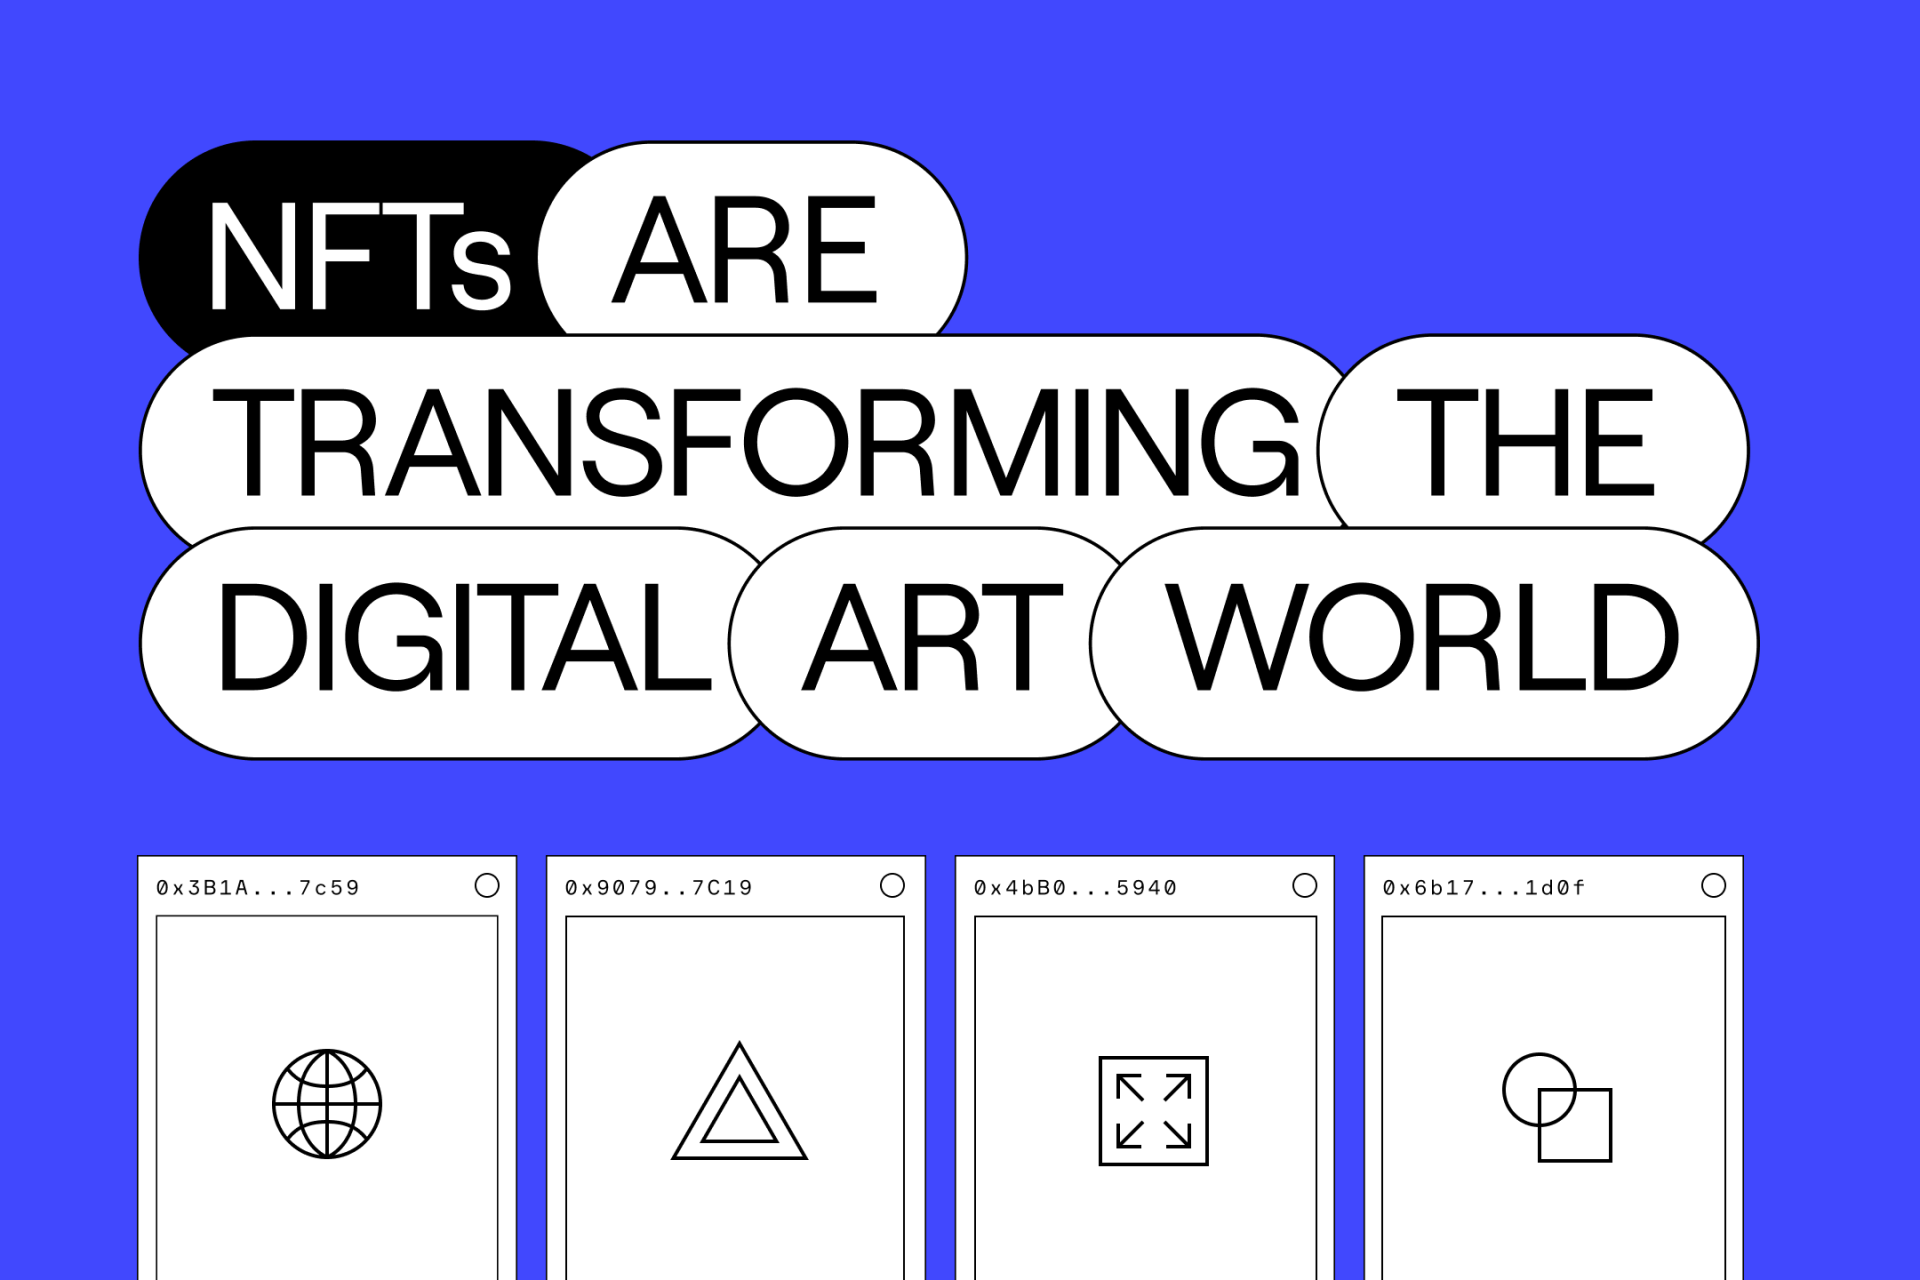 NFTs are transforming the digital art world.